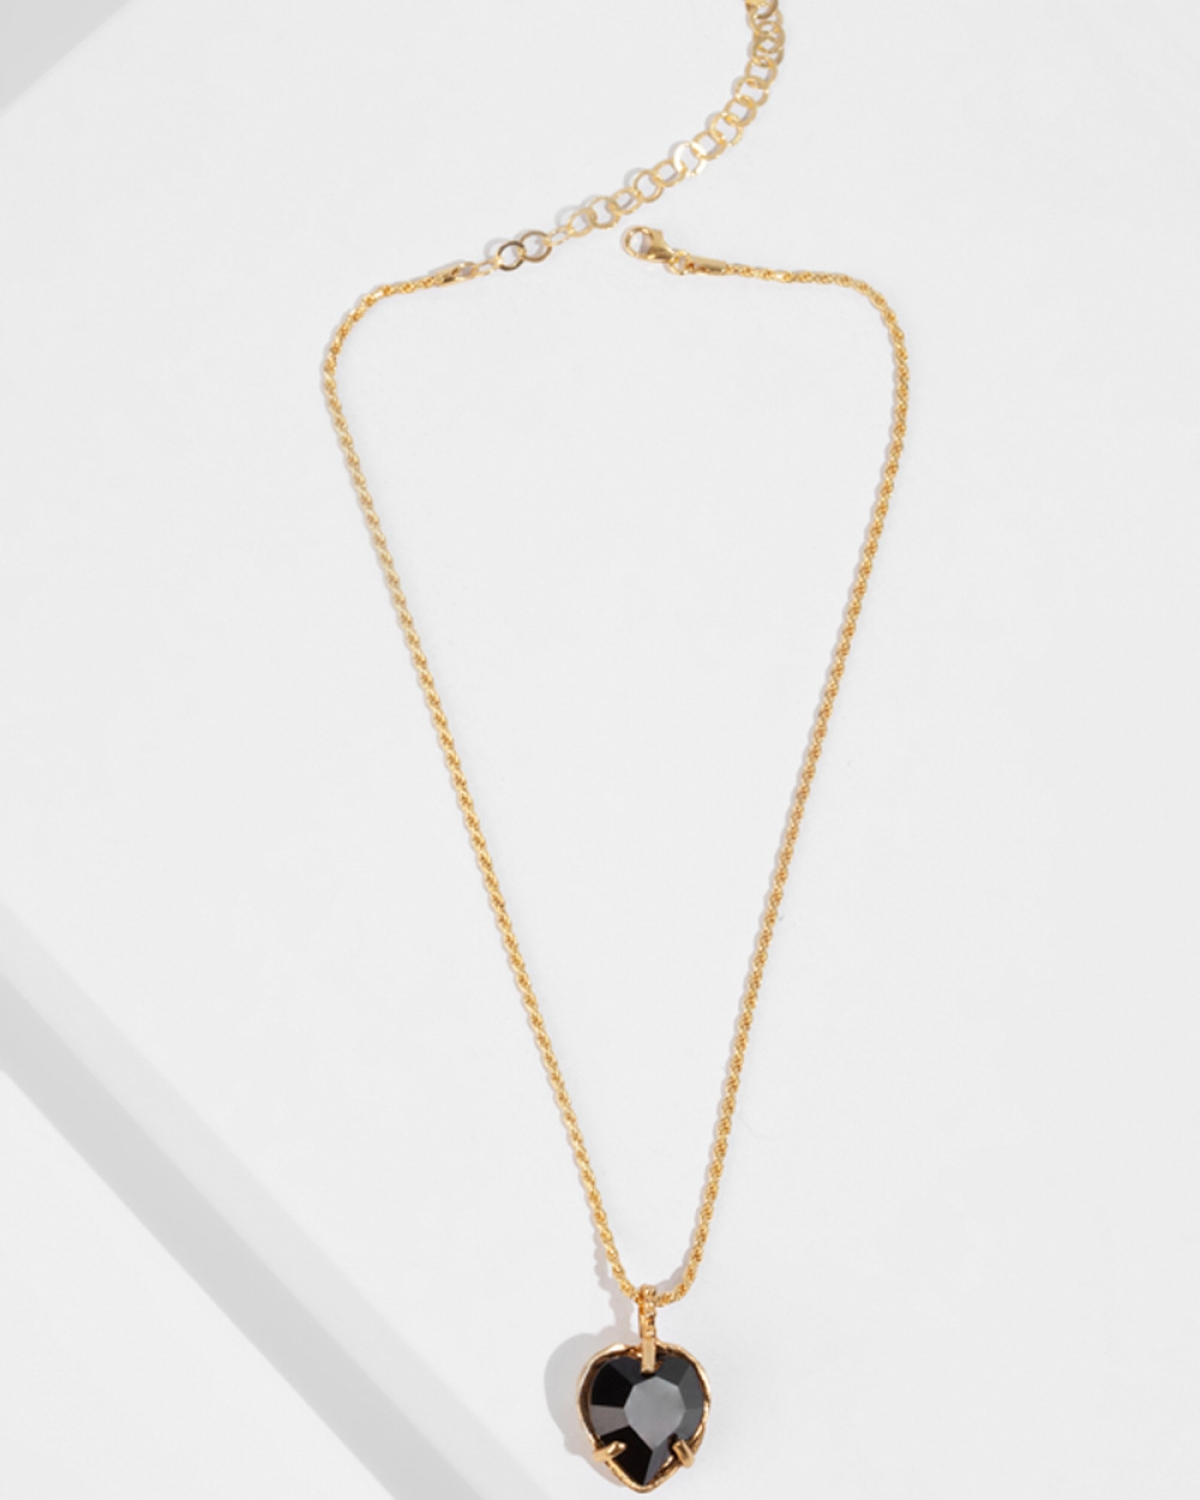 ISABELLA Gold Pedant/Necklace